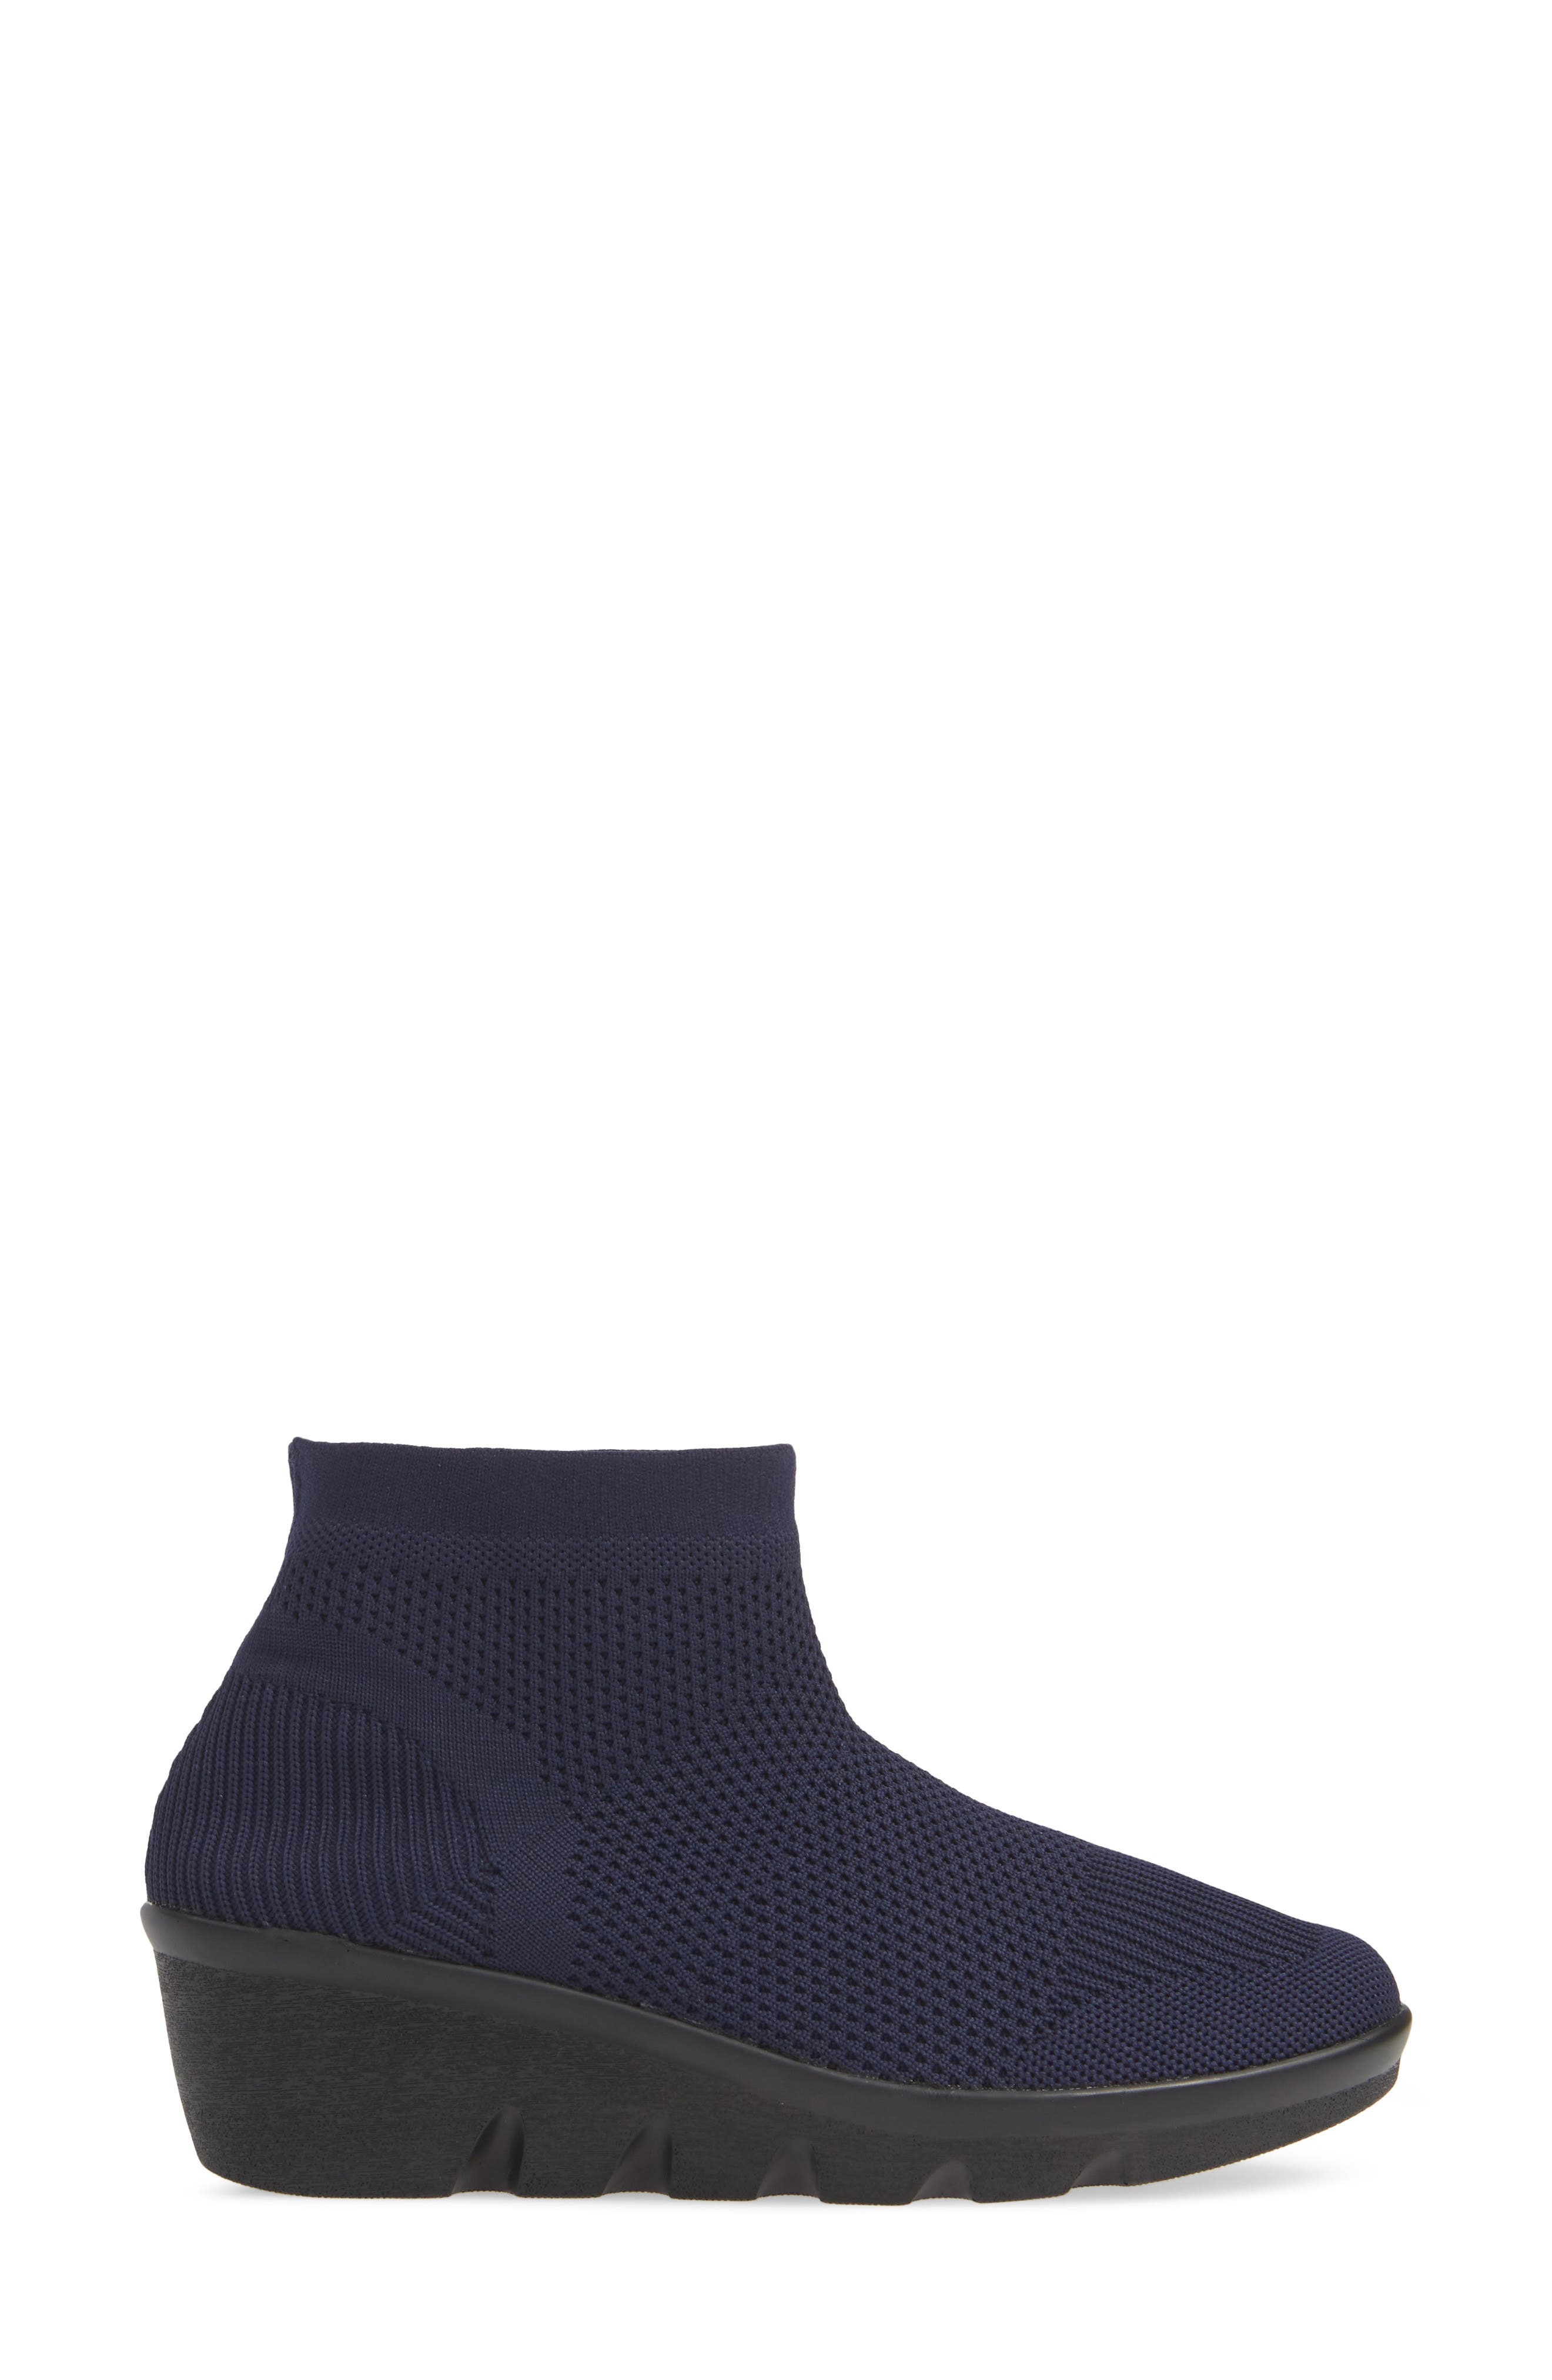 BERNIE MEV., Camryn Knit Bootie, Alternate thumbnail 3, color, NAVY FABRIC